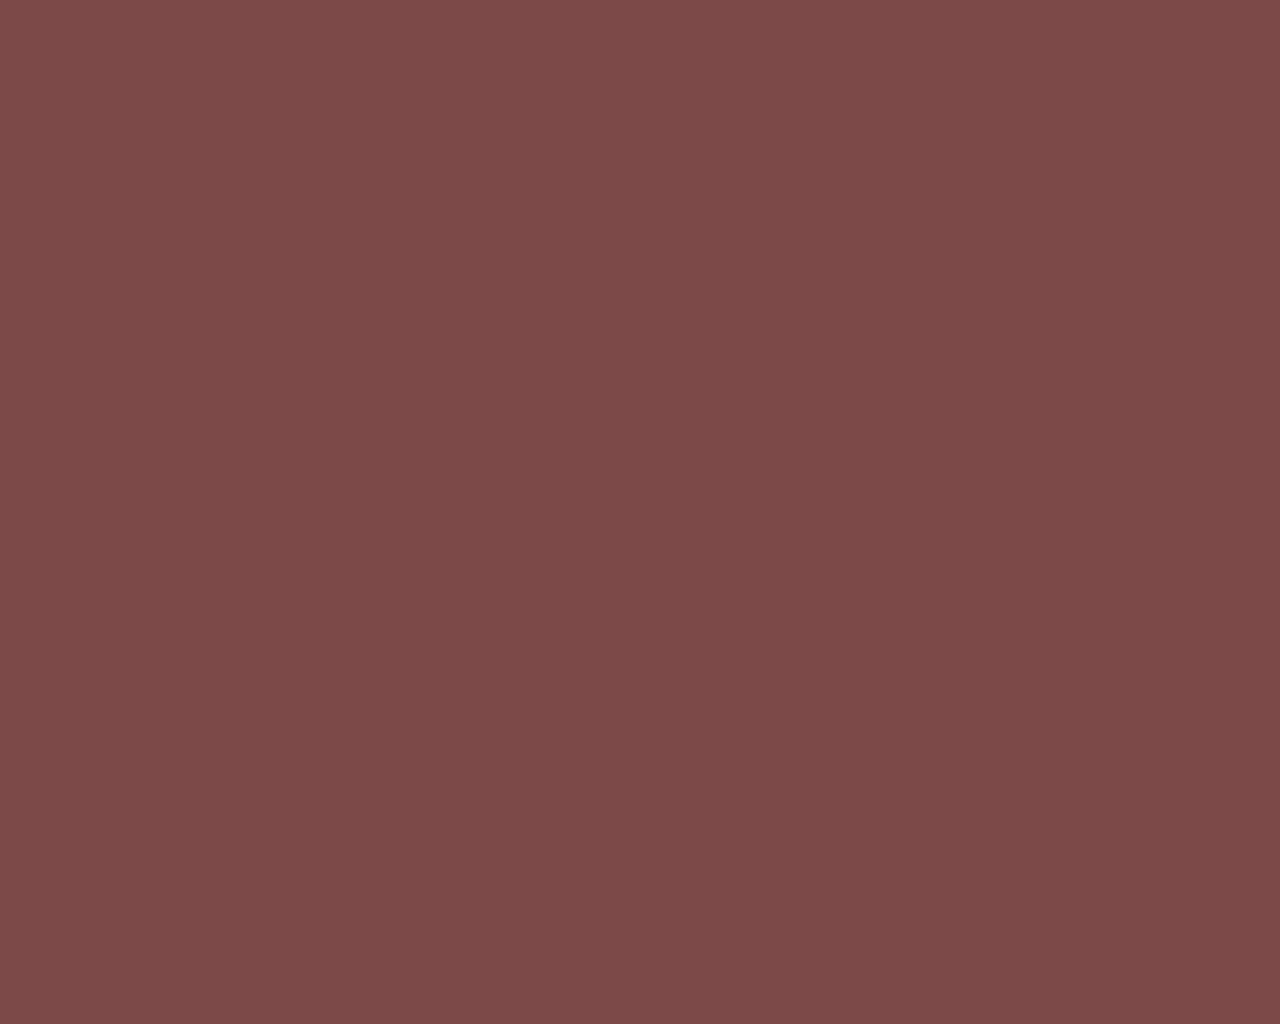 1280x1024 Tuscan Red Solid Color Background